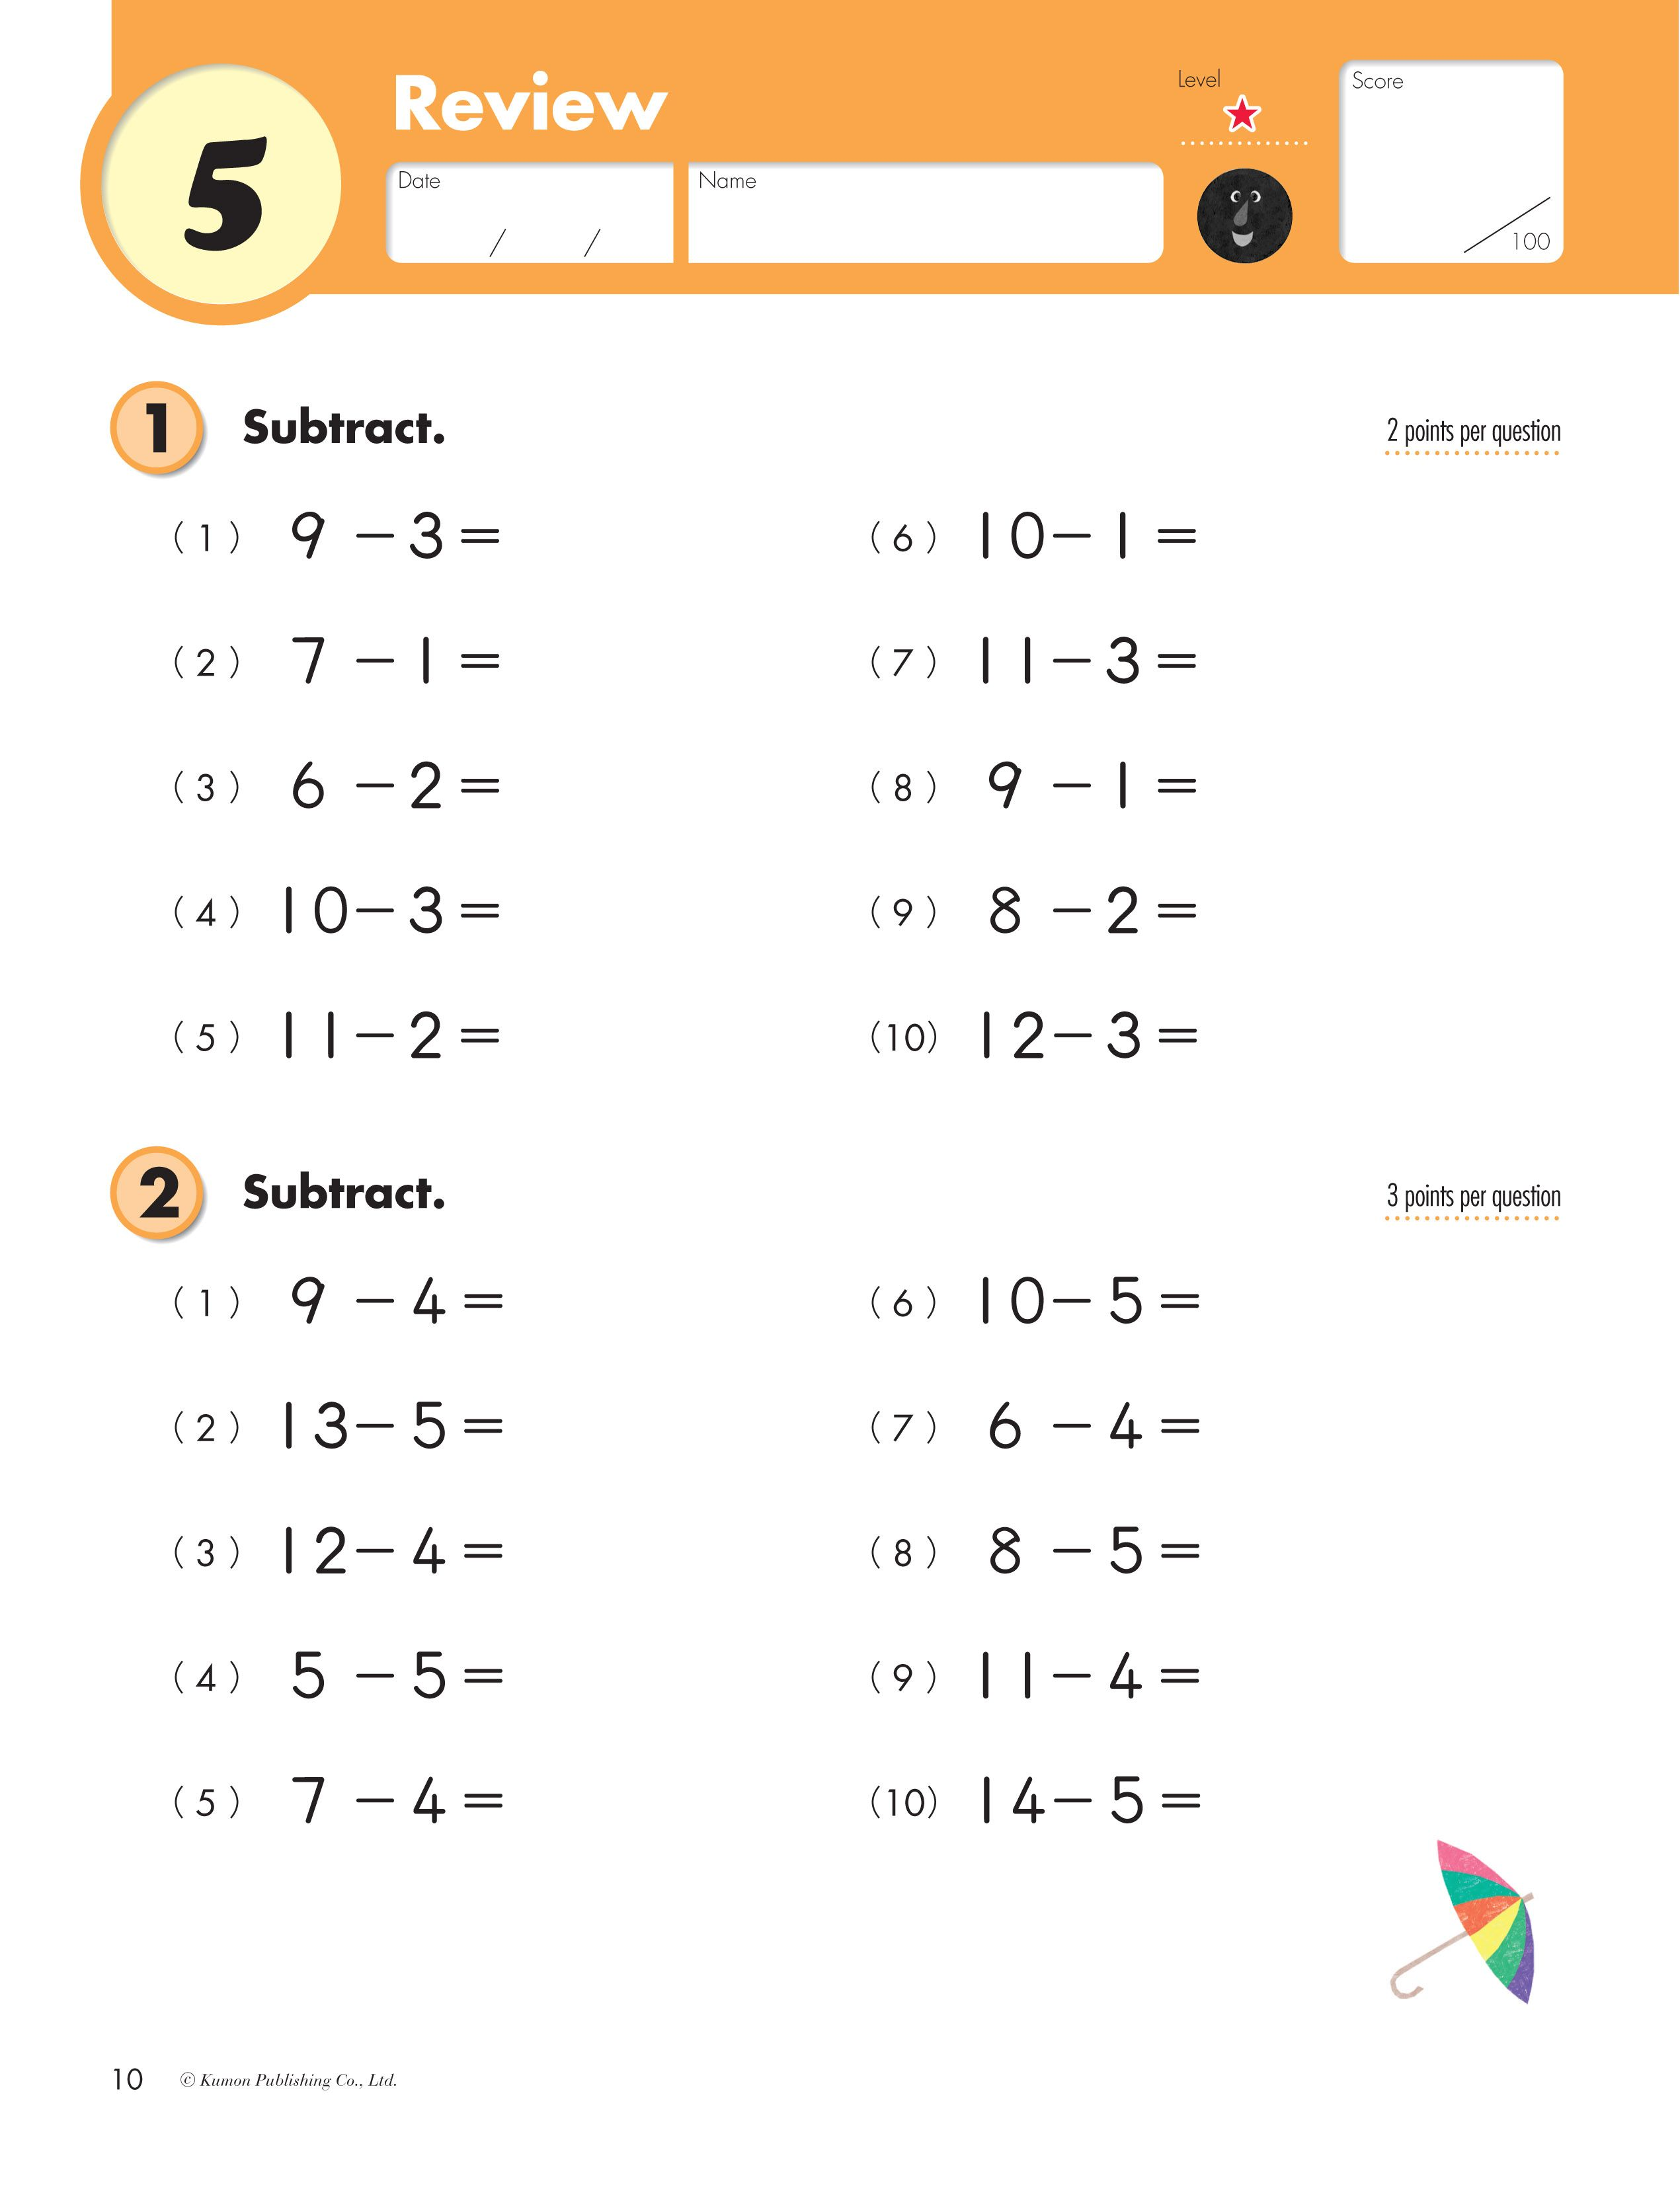 hight resolution of Kumon Publishing   Kumon Publishing   Grade 2 Subtraction   Kumon math